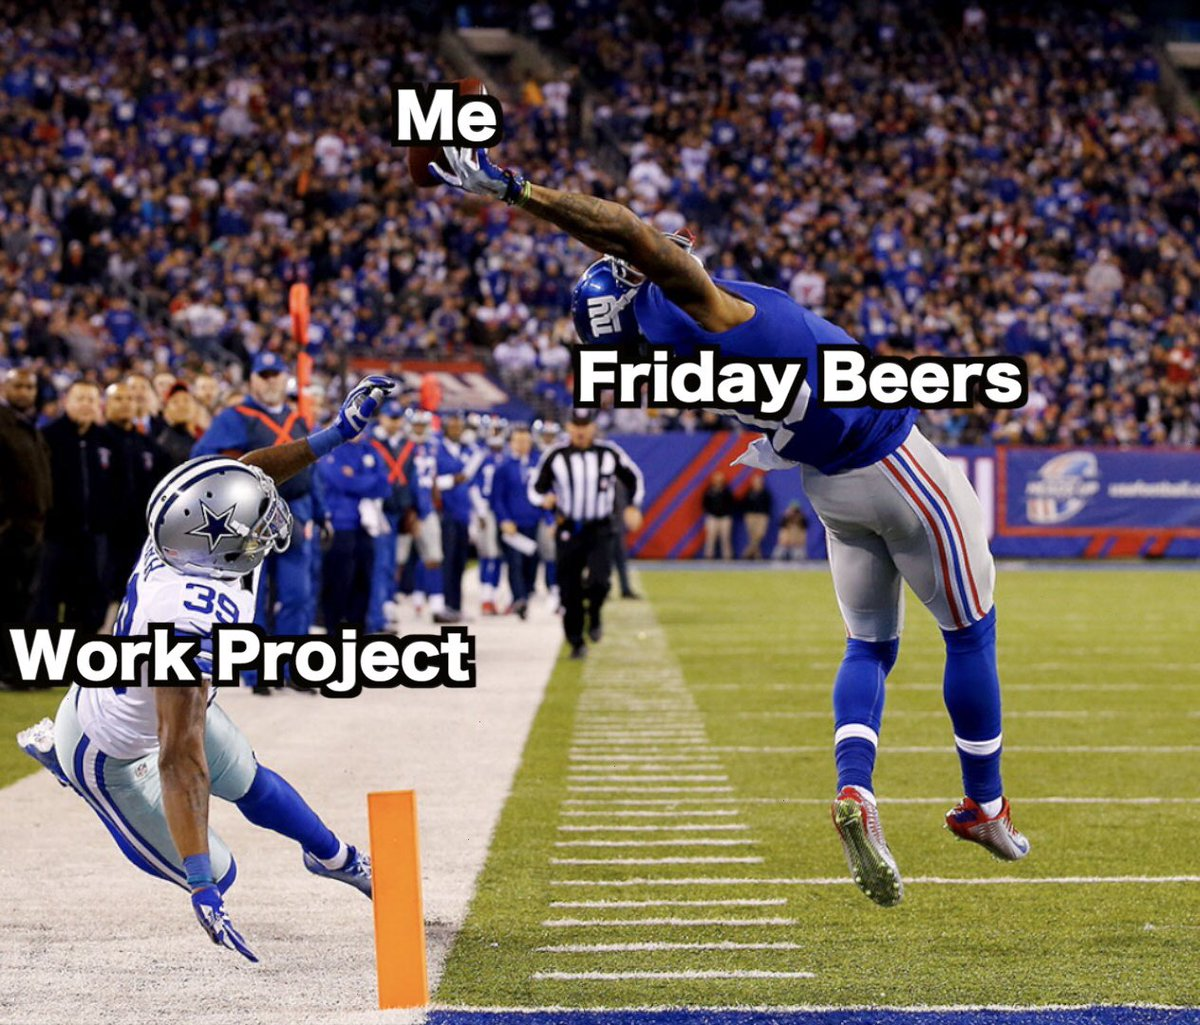 Saved by the beers